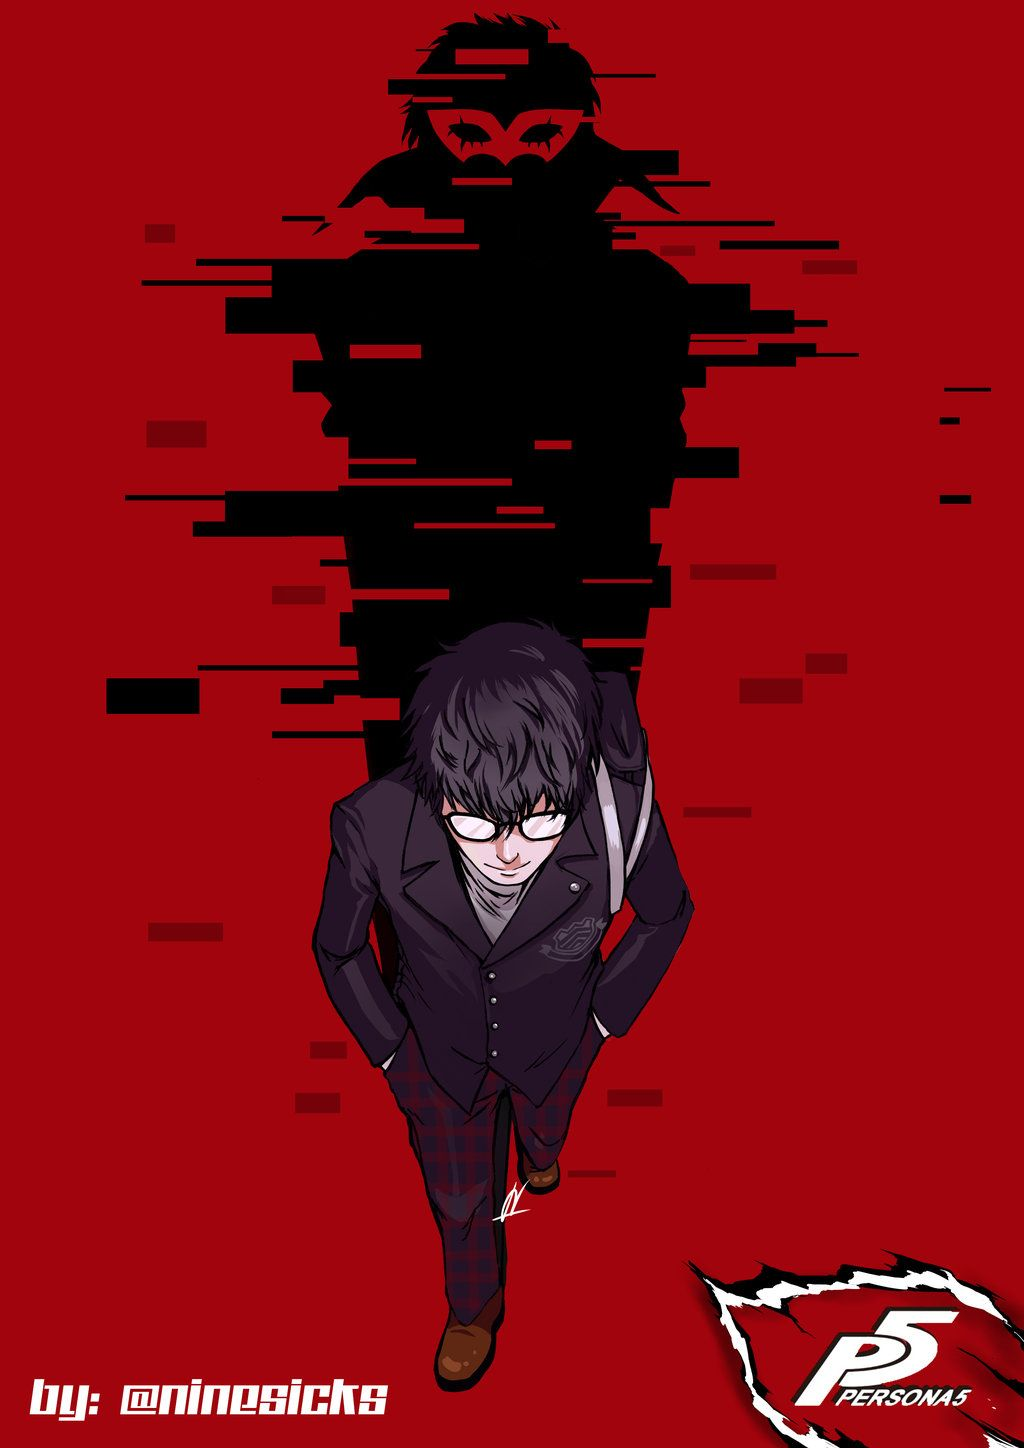 Protagonist Persona Wallpapers Hd High Quality 1024 576 Persona 5 Wallpapers 34 Wallpapers Adorable Wallpapers Persona 5 Joker Persona 5 Persona